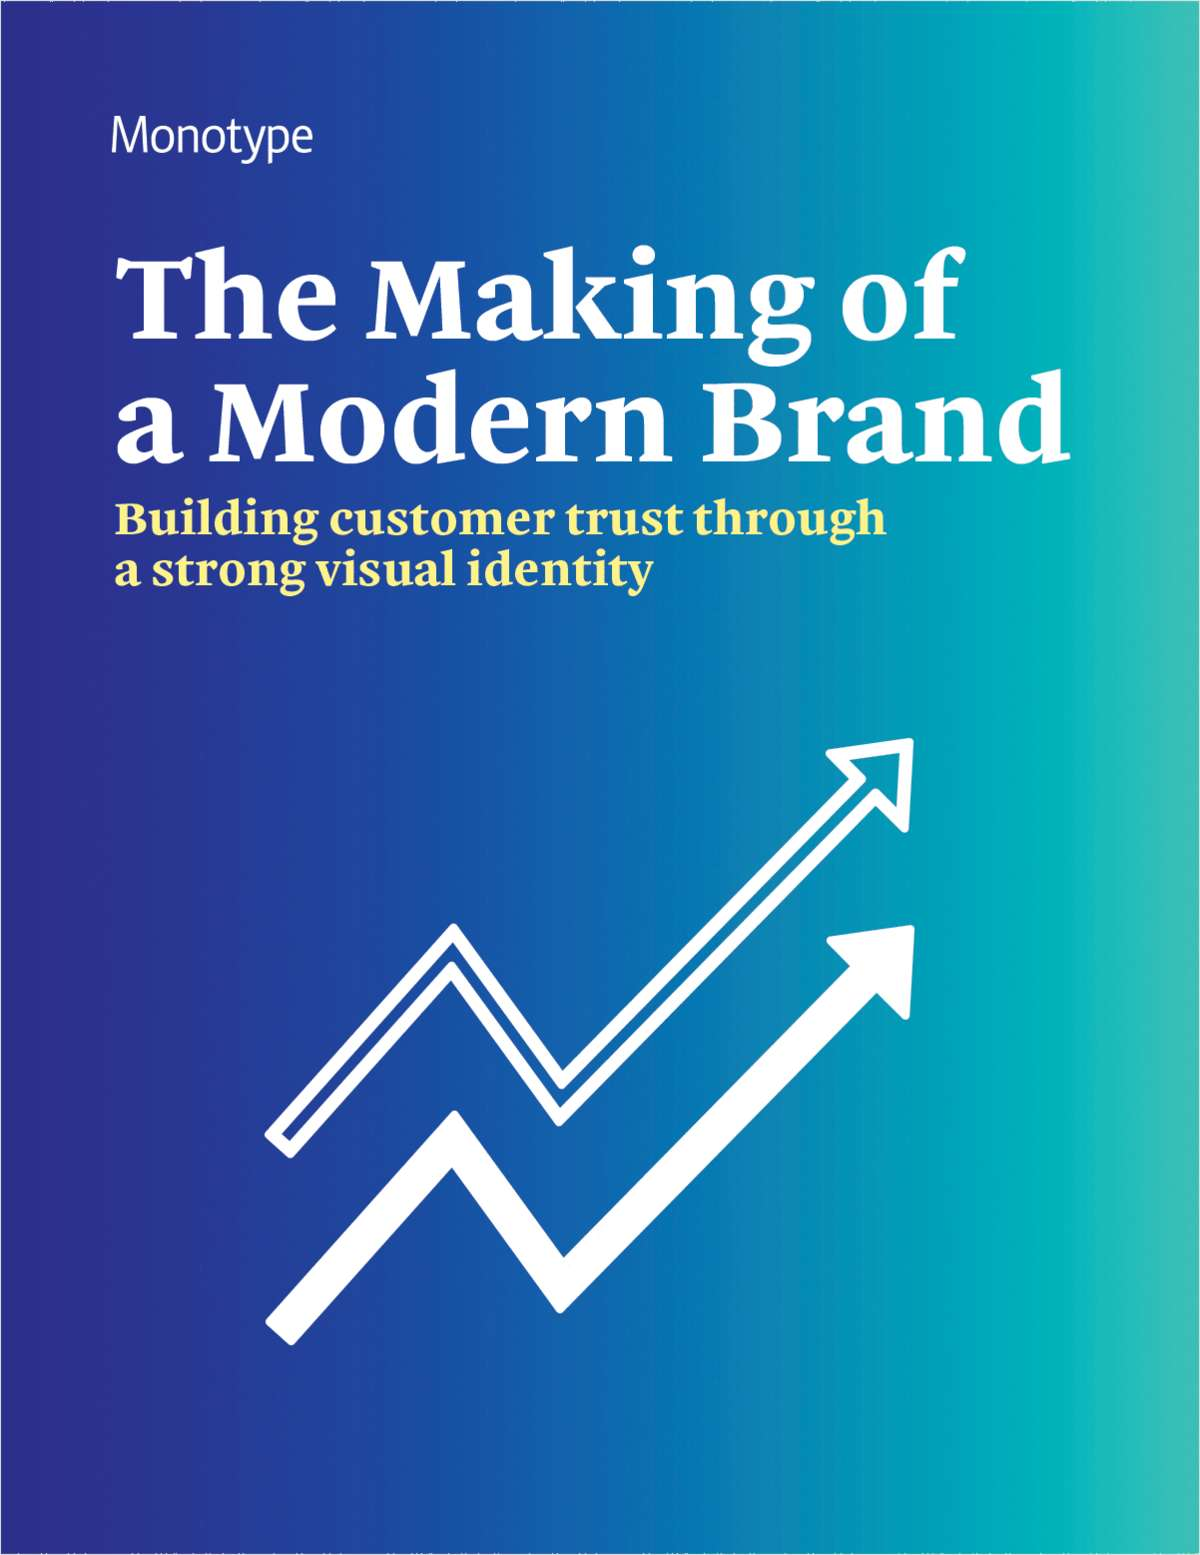 The Making of a Modern Brand: Building Customer Trust Through a Strong Visual Identity